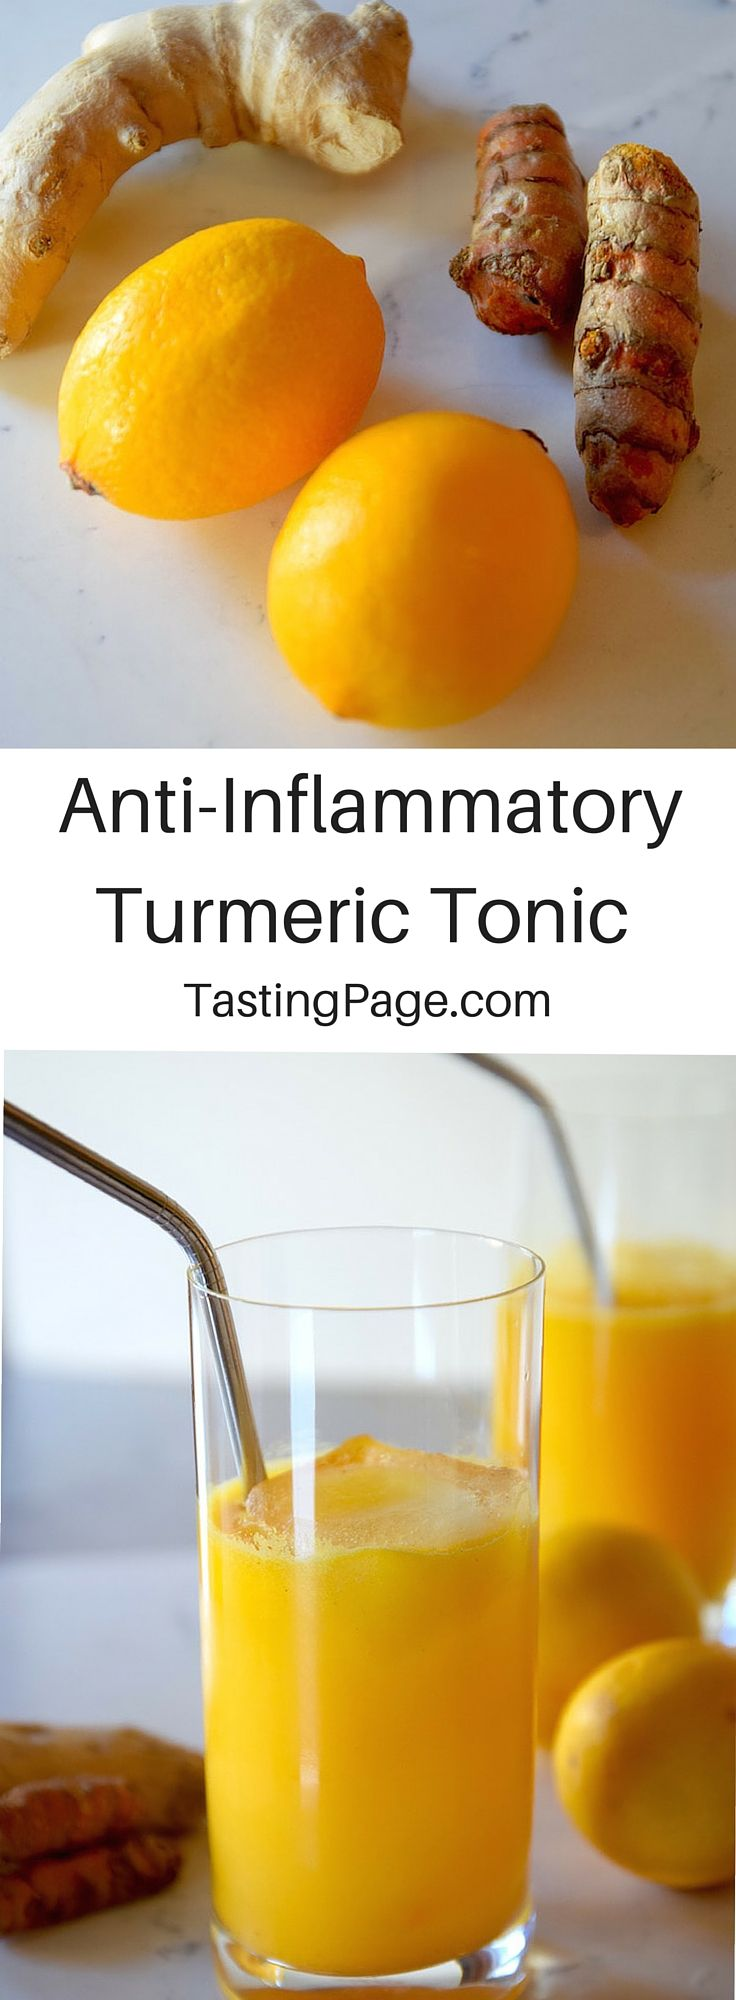 Anti-Inflammatory Turmeric Tonic - stay healthy this winter with this delicious, cancer fighting drink | TastingPage.com #turmeric #antiinflammatory #elixir